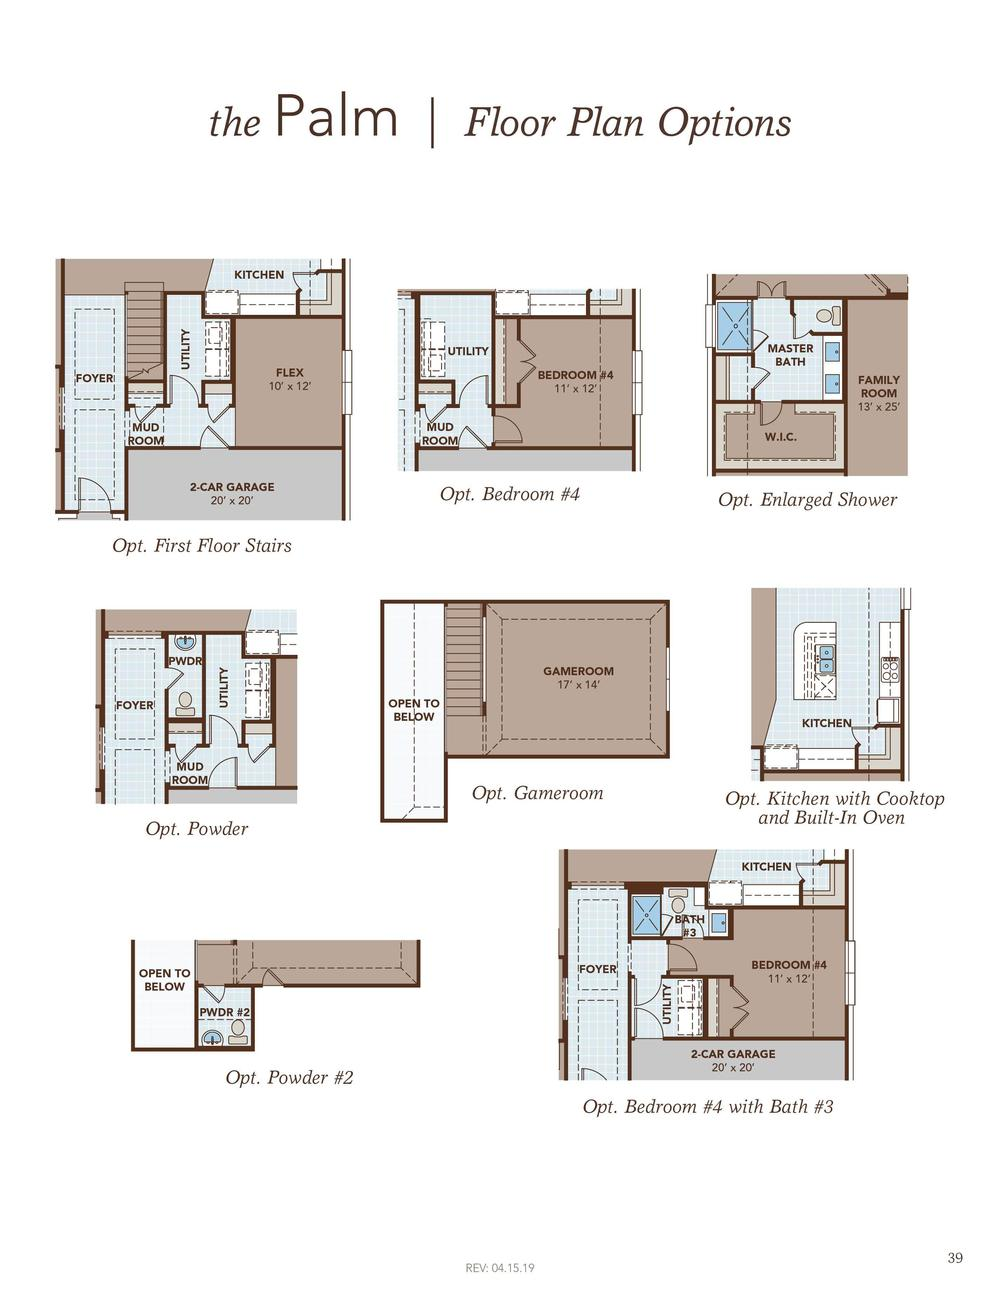 Palm Floor Plan Options